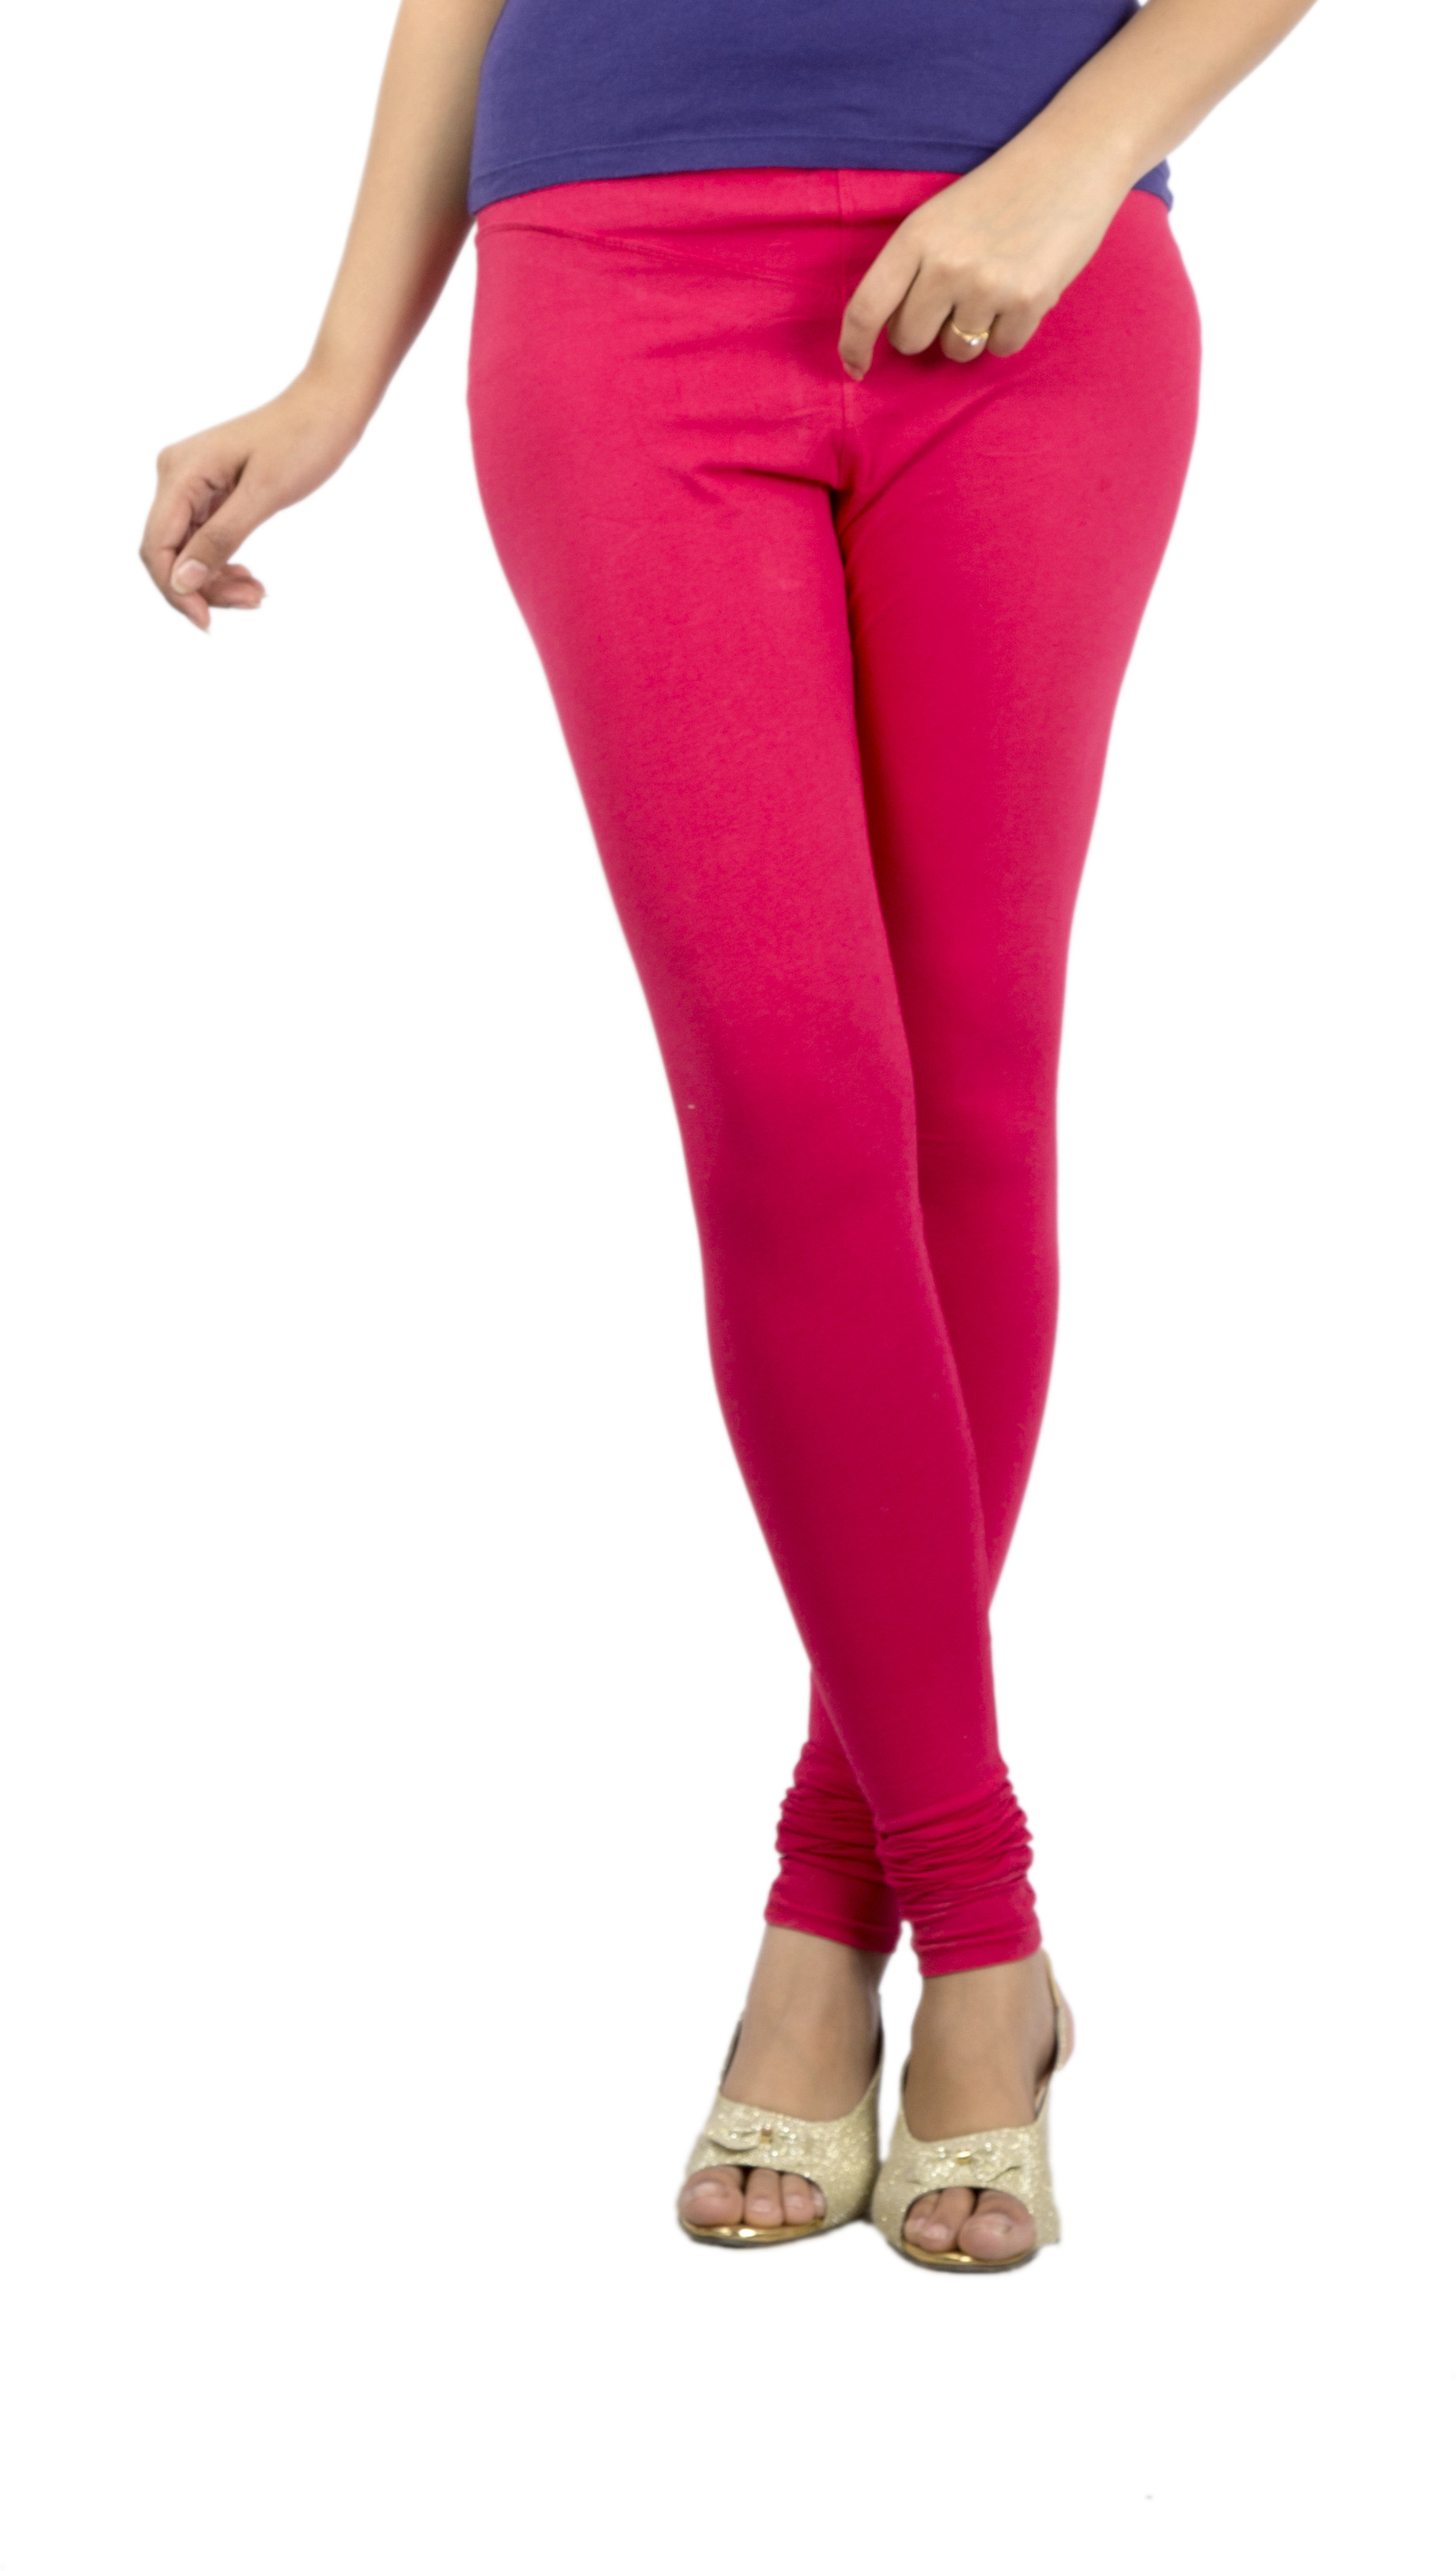 Jublee Womens Pink Leggings